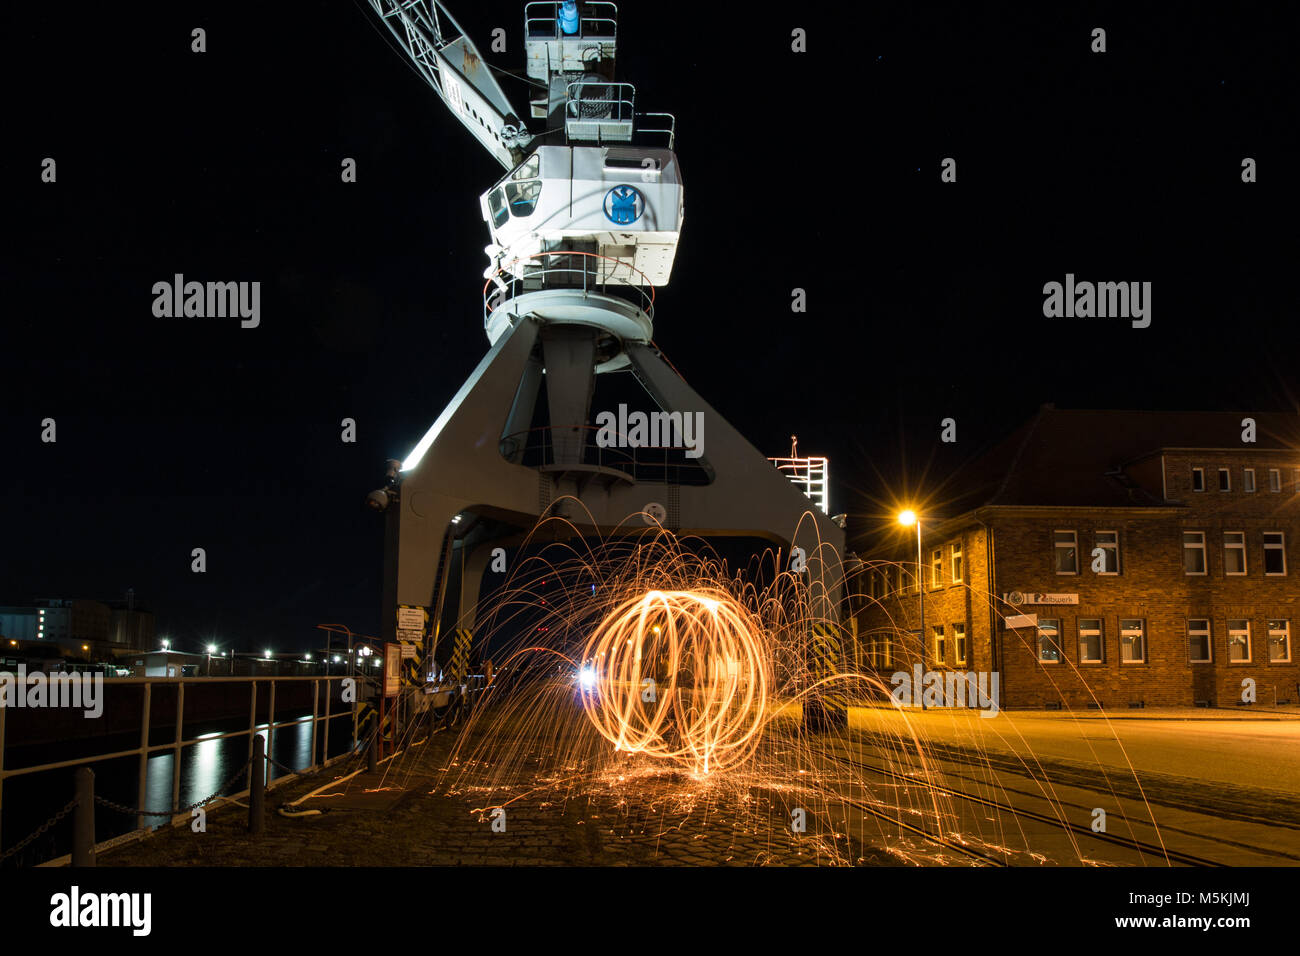 Old loading crane with fireball. Steel wool. At an old dock. Stock Photo